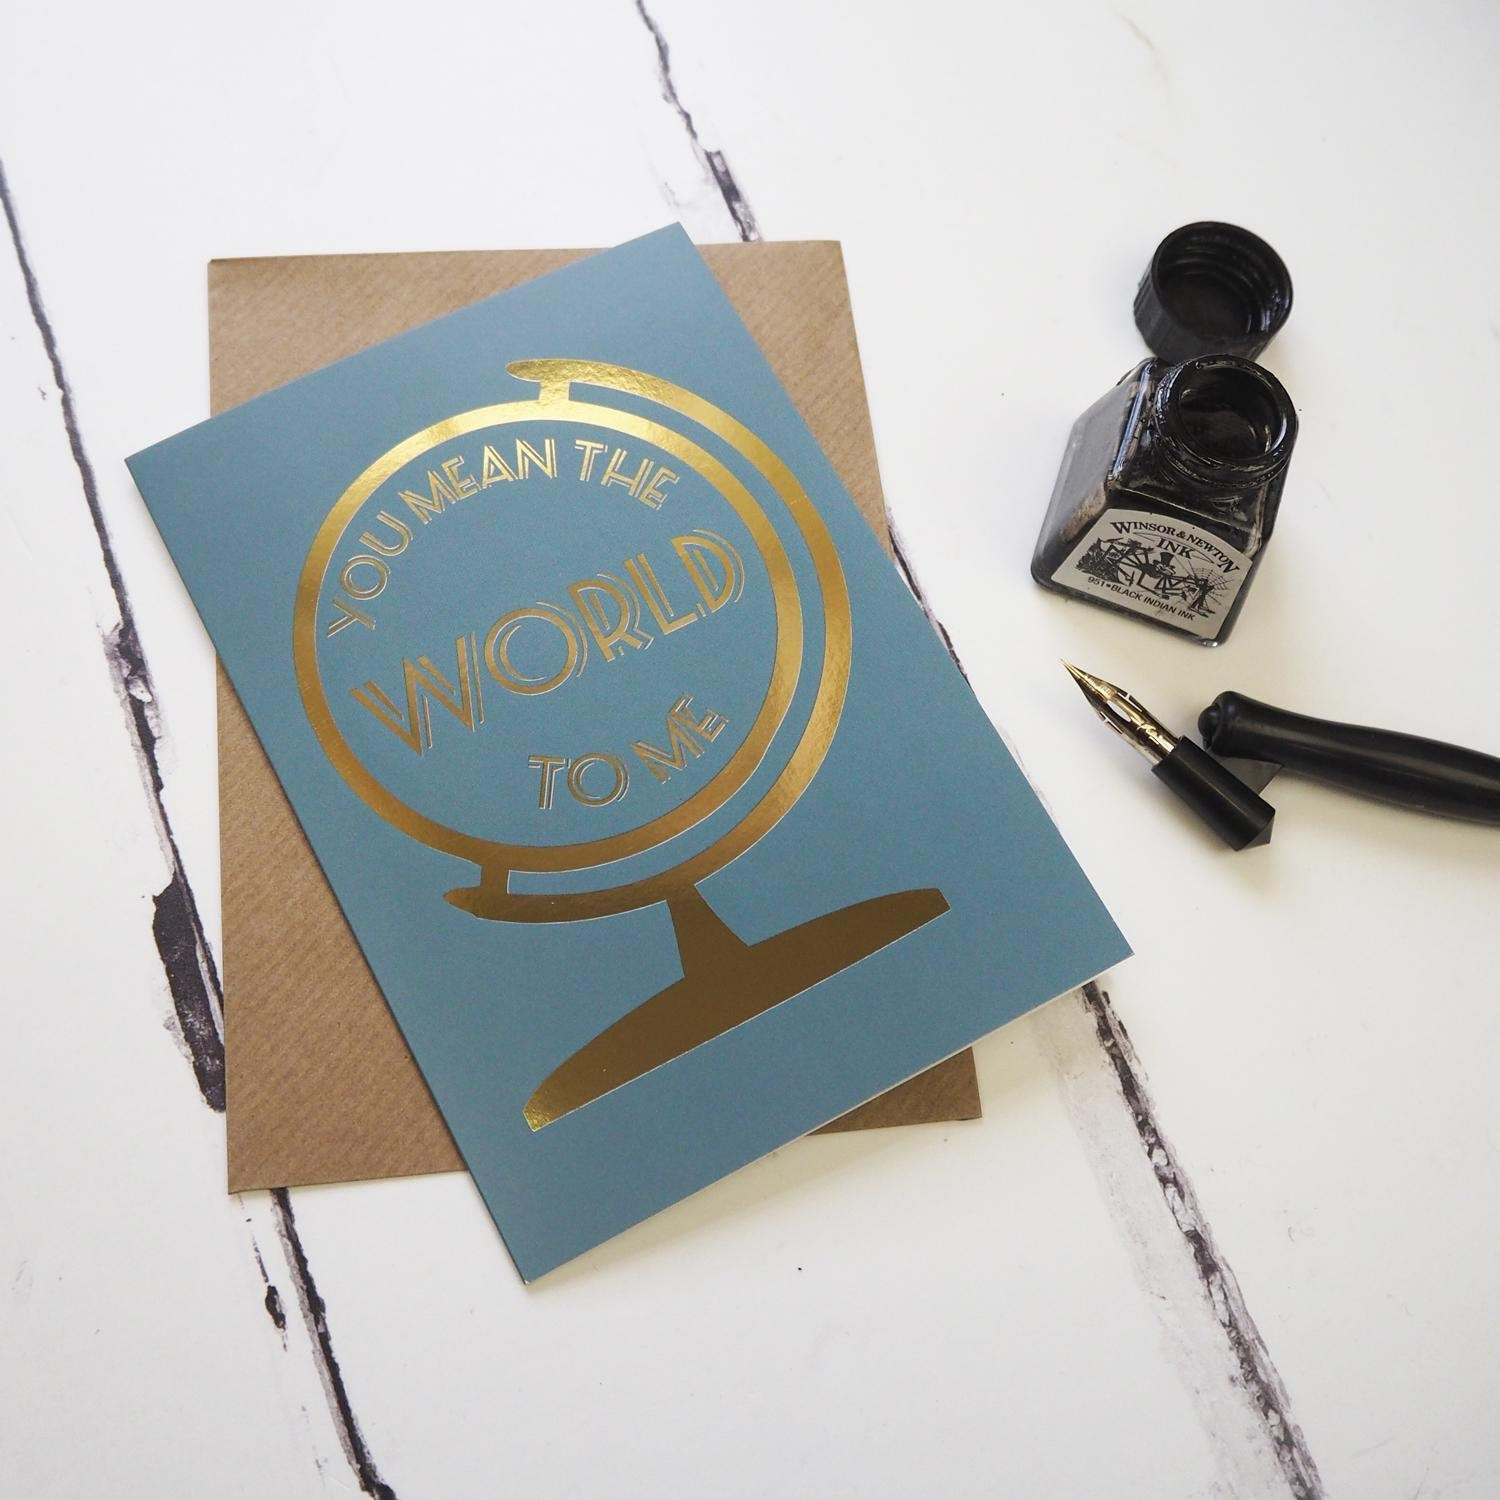 You mean the world to me - Foiled globe greetings card